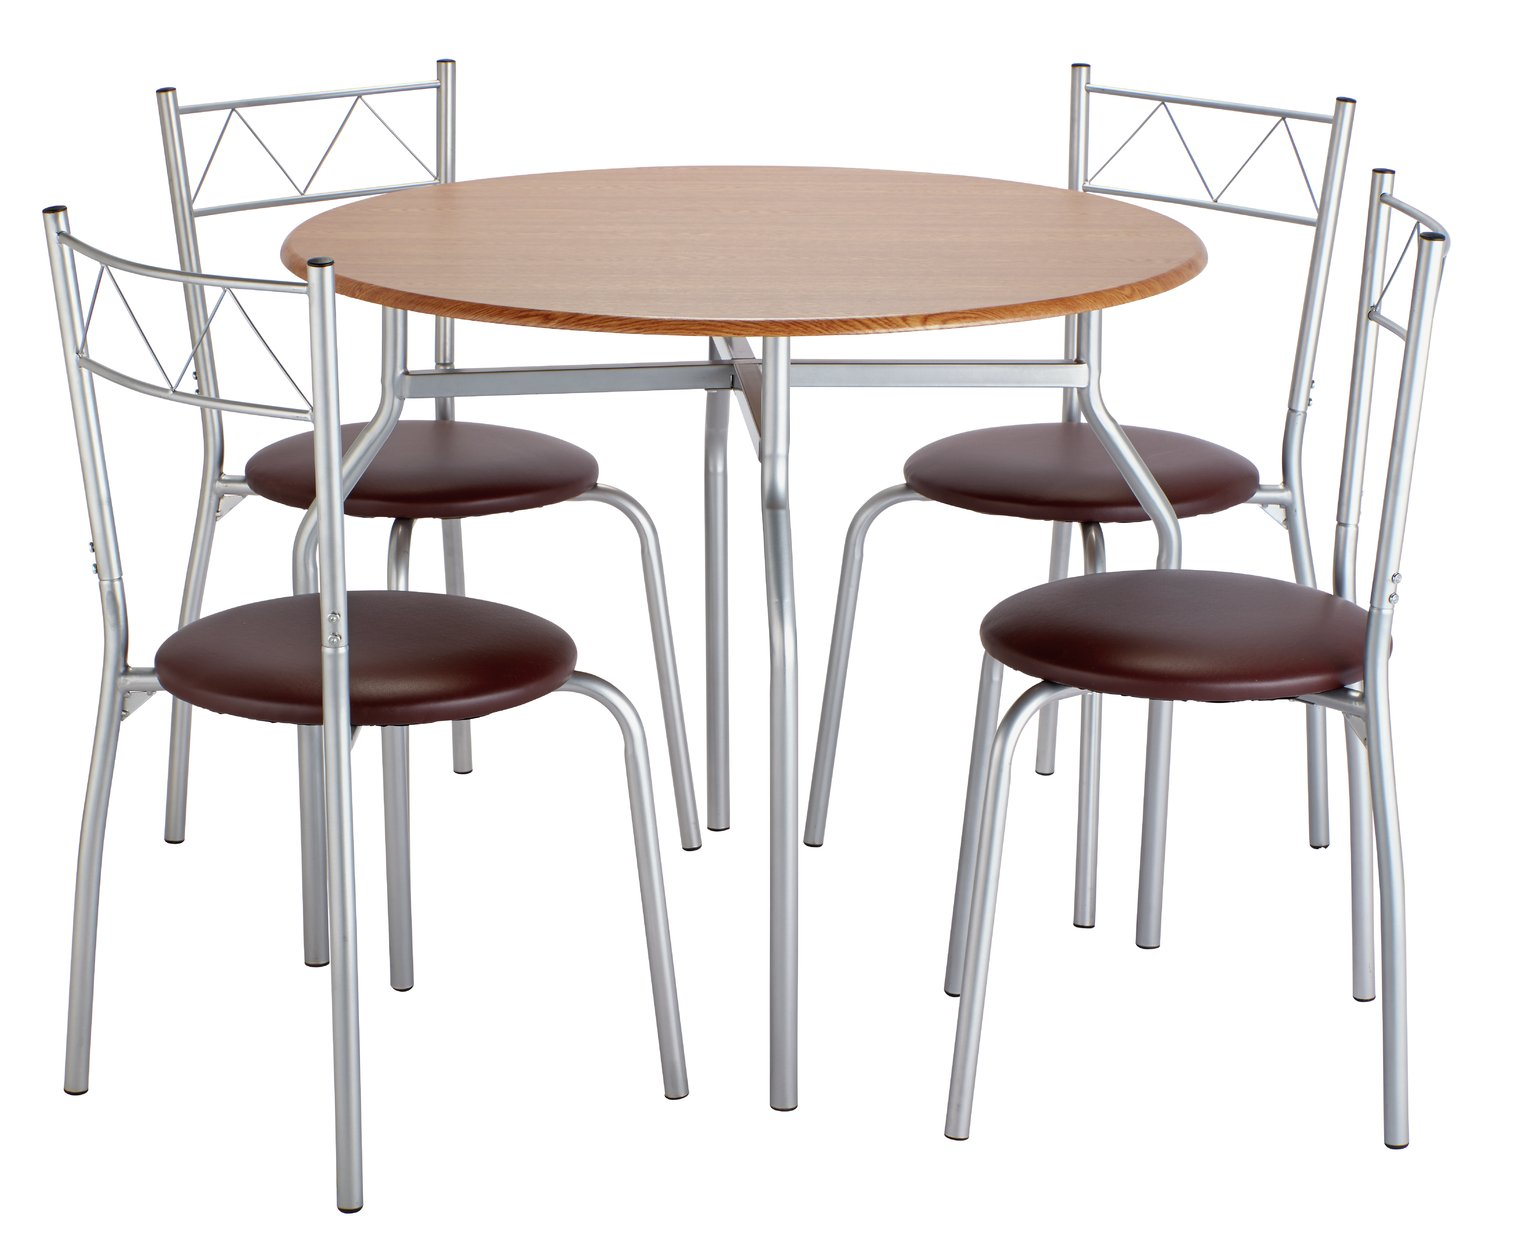 Argos Home Oslo Round Dining Table & 4 Chairs review